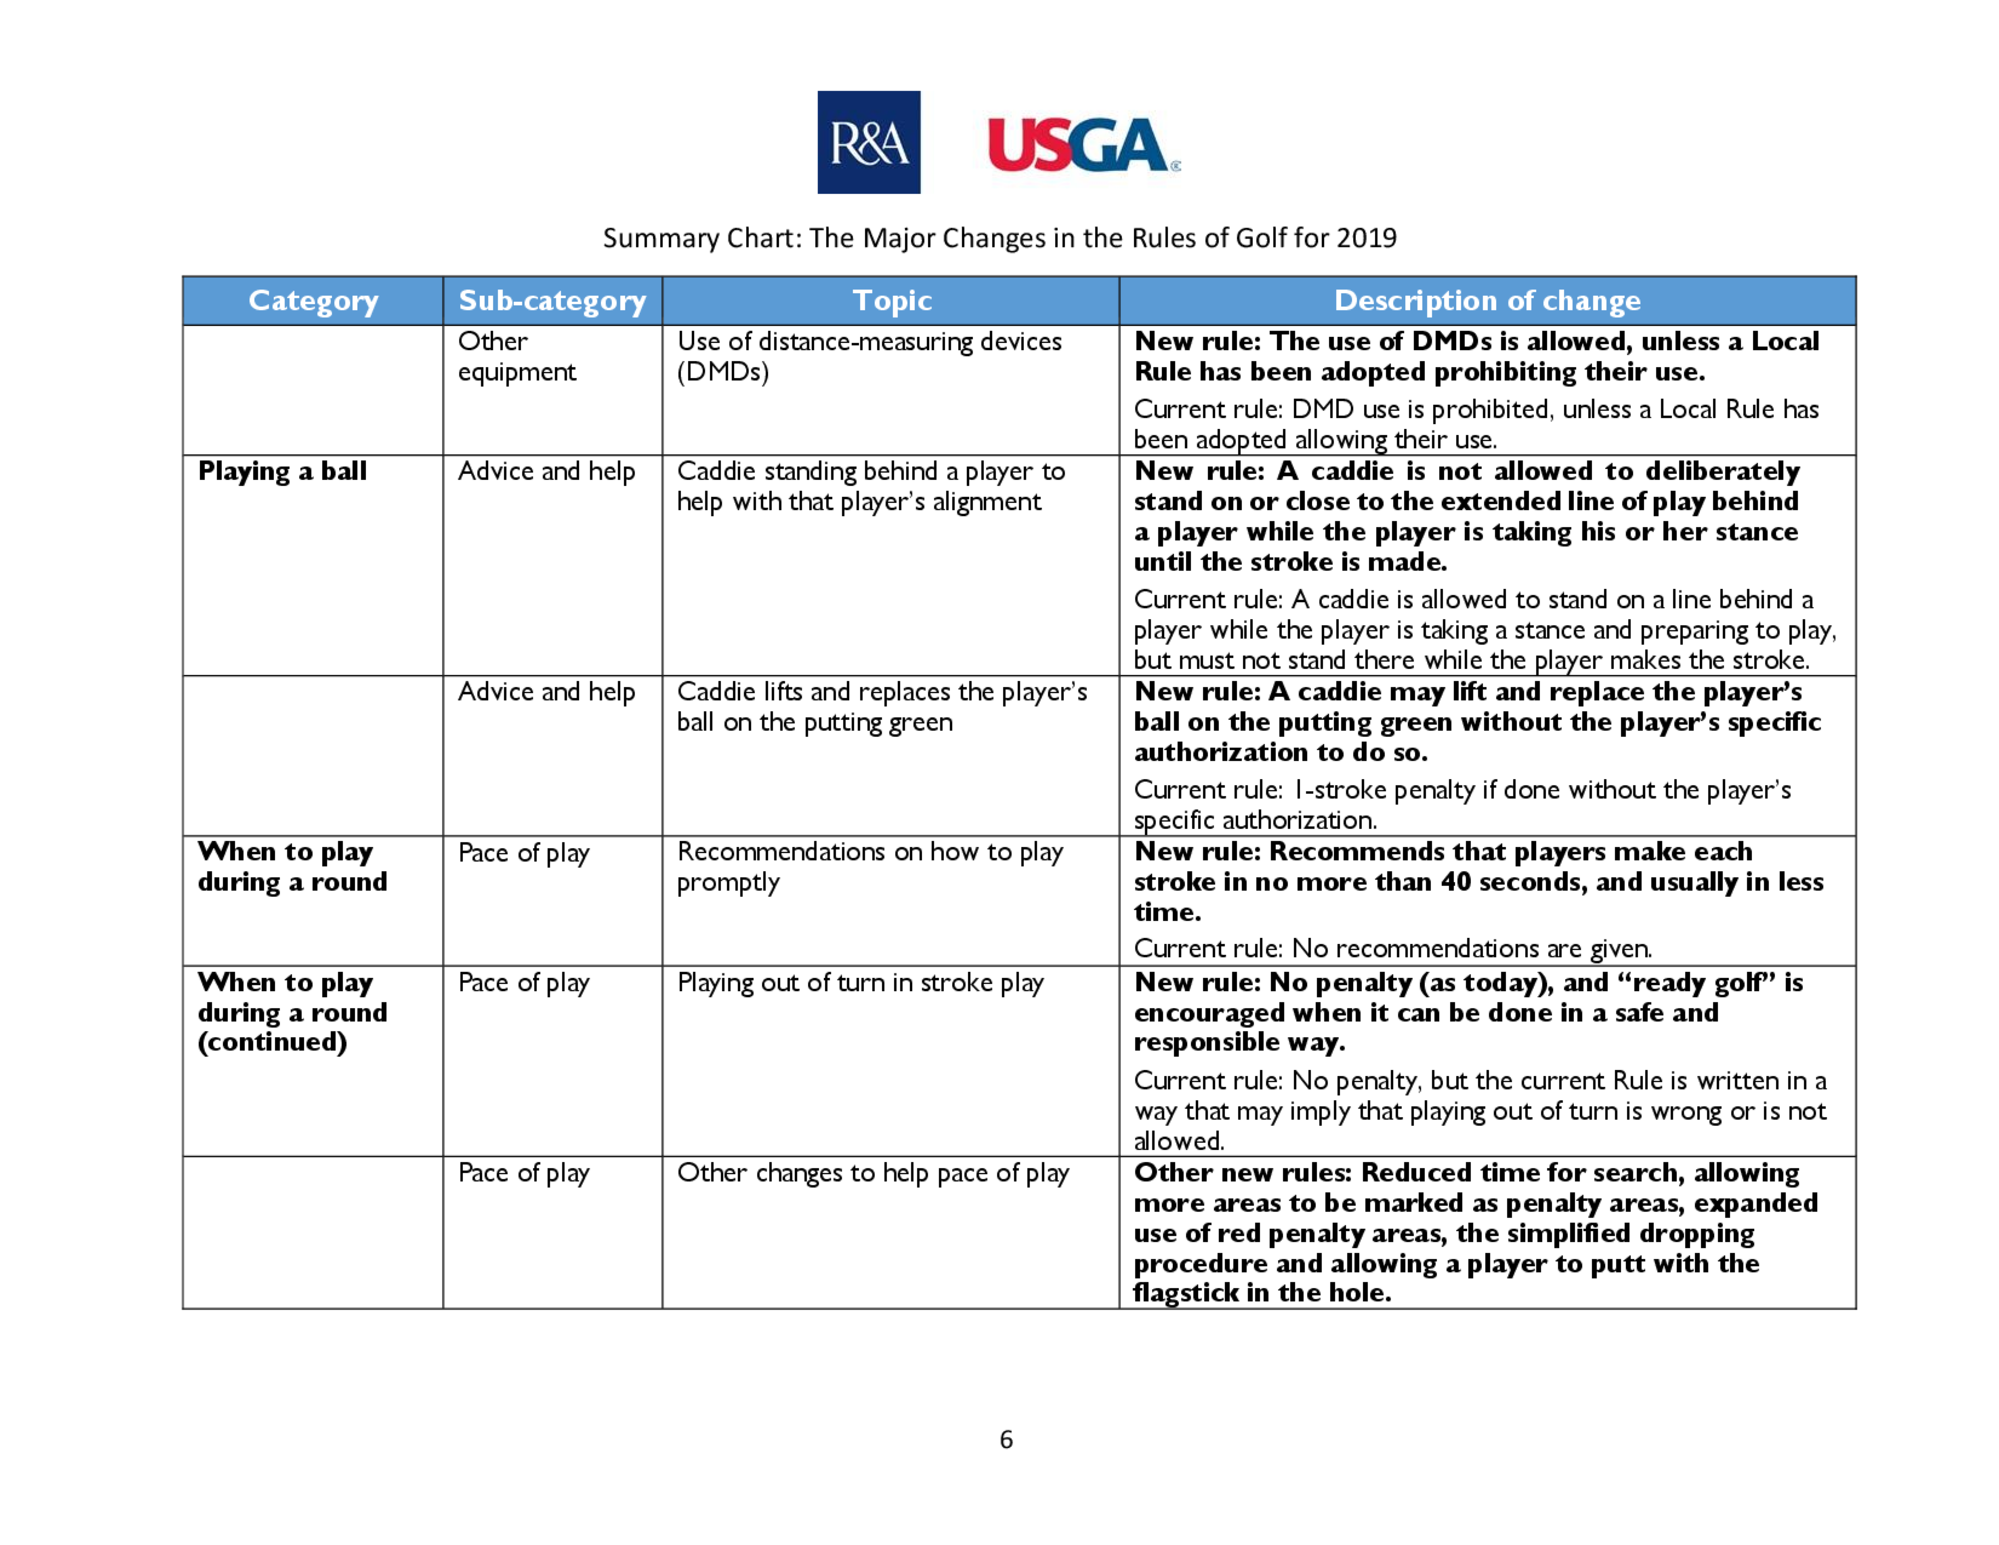 Summary of main changes 2019 rules of golf final  page 6 8   1